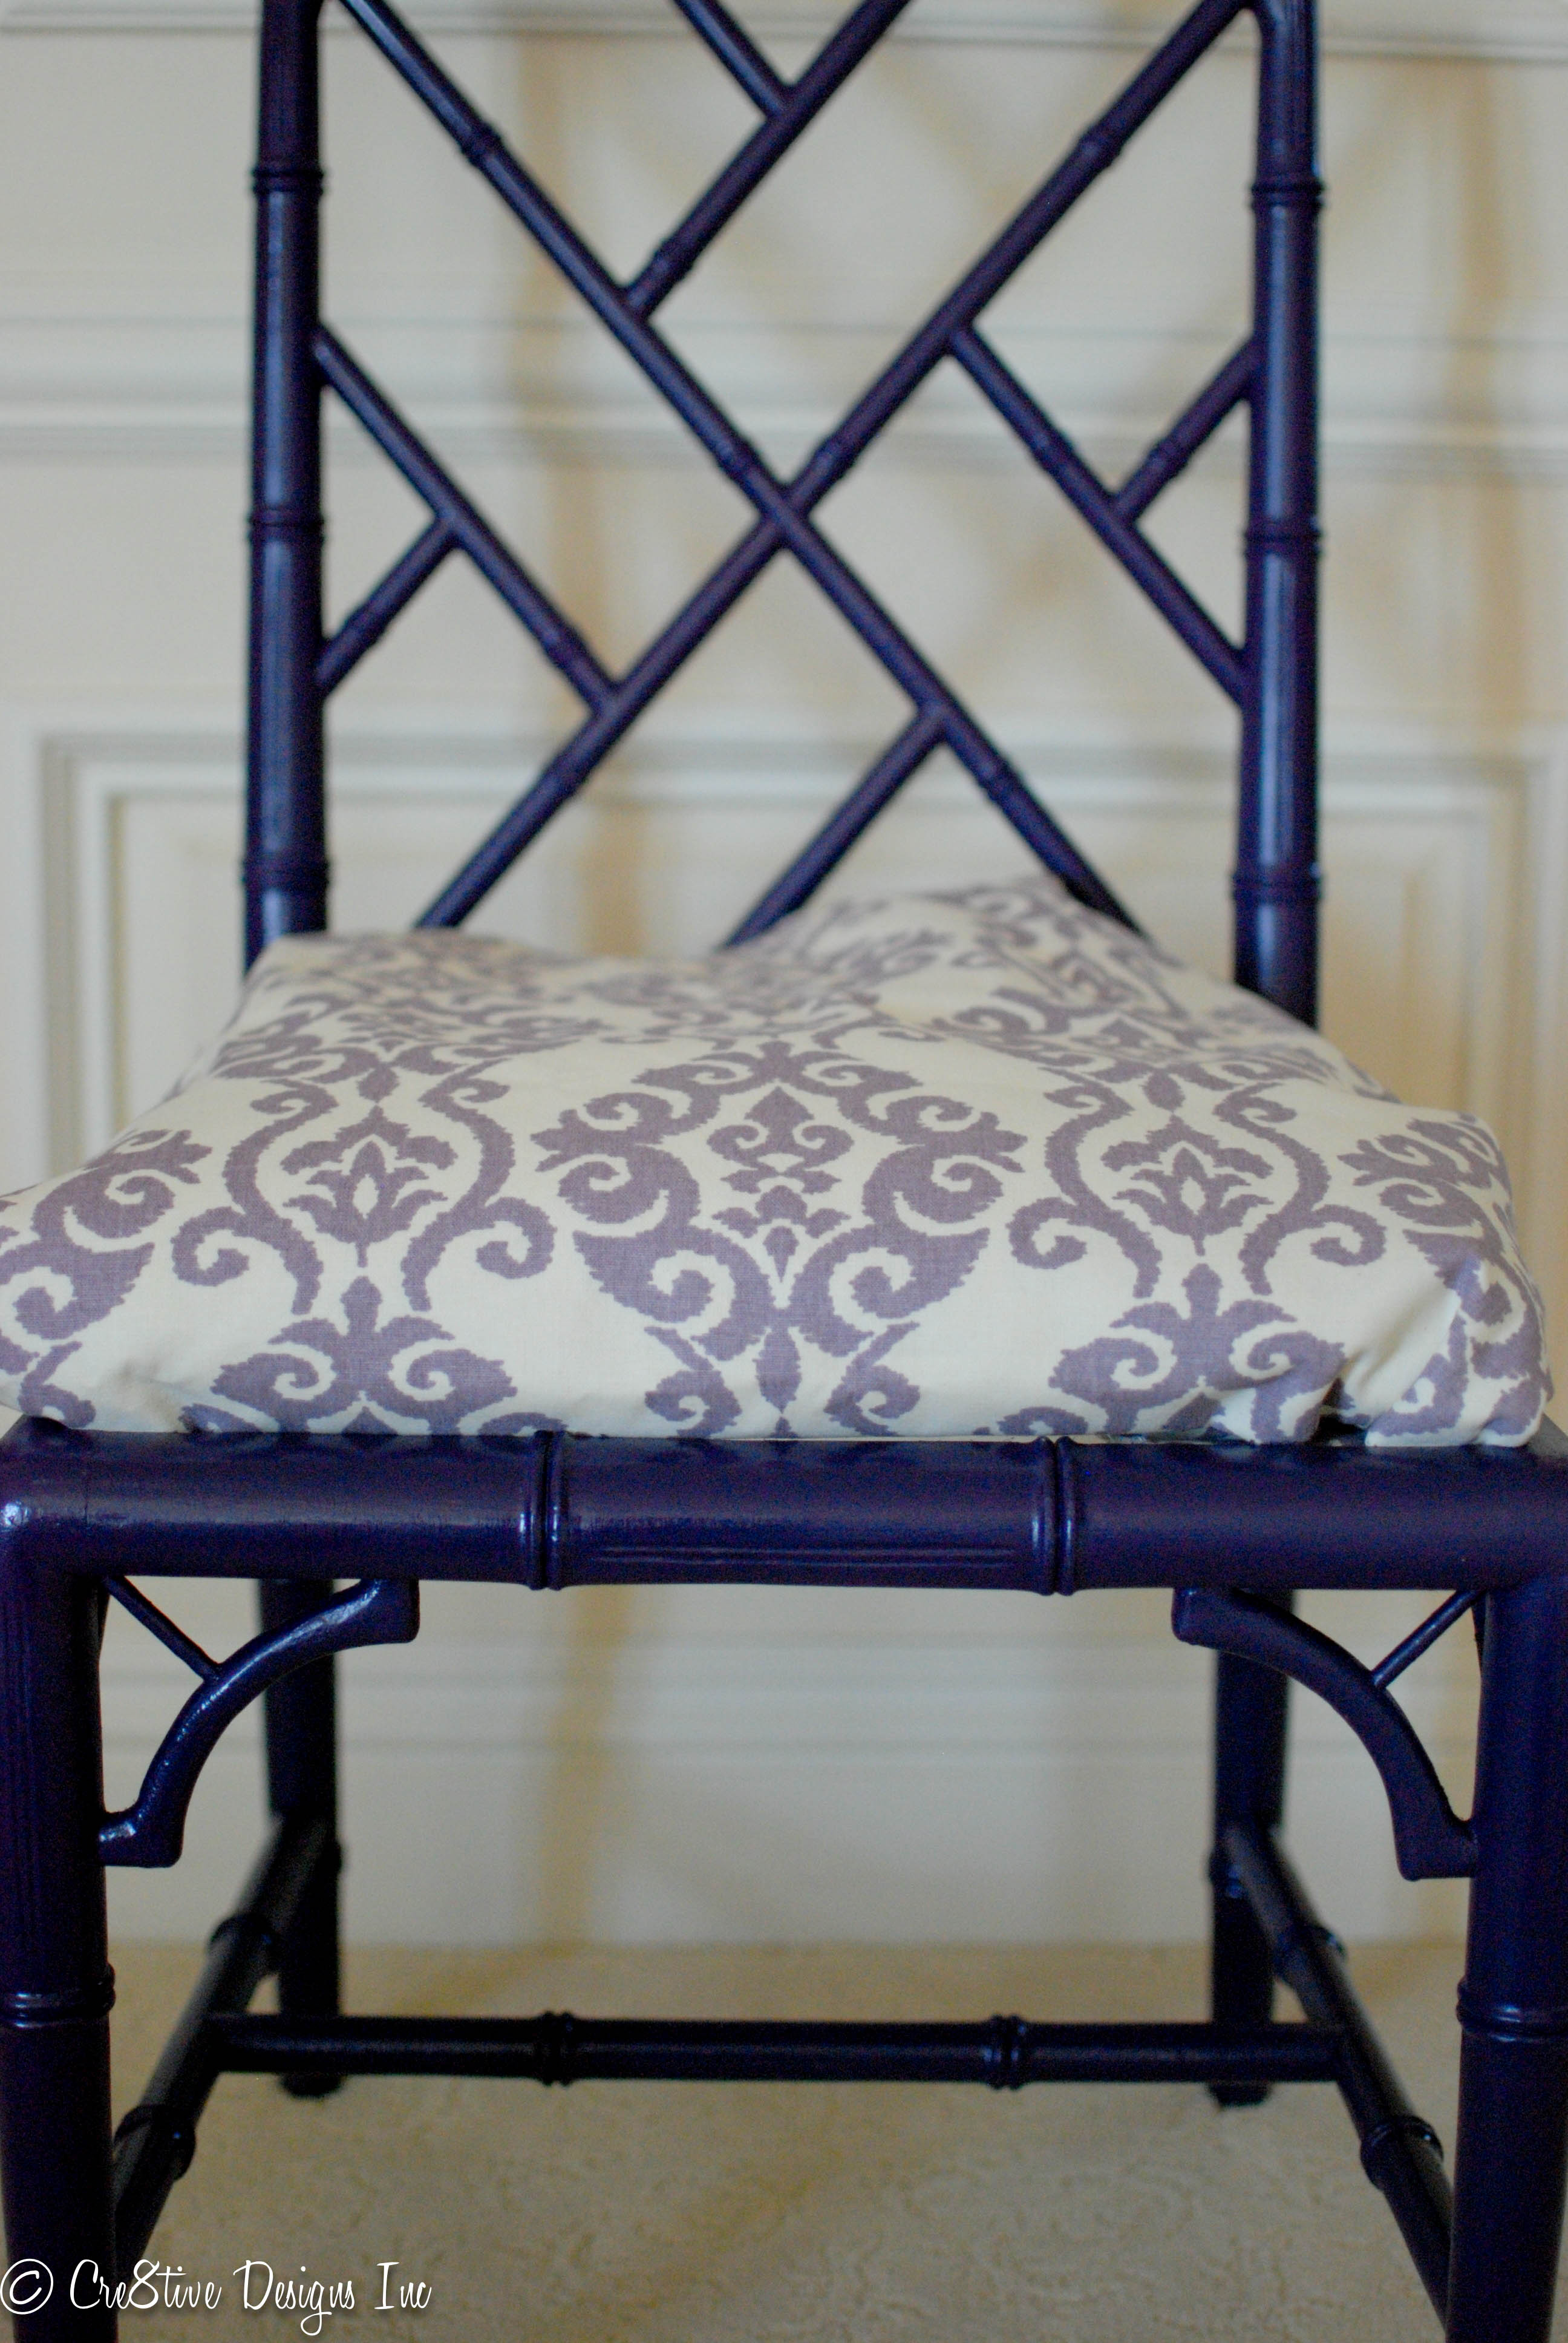 Bamboo chippendale chairs - Purple Faux Bamboo Chair With A Lavender Damask Print